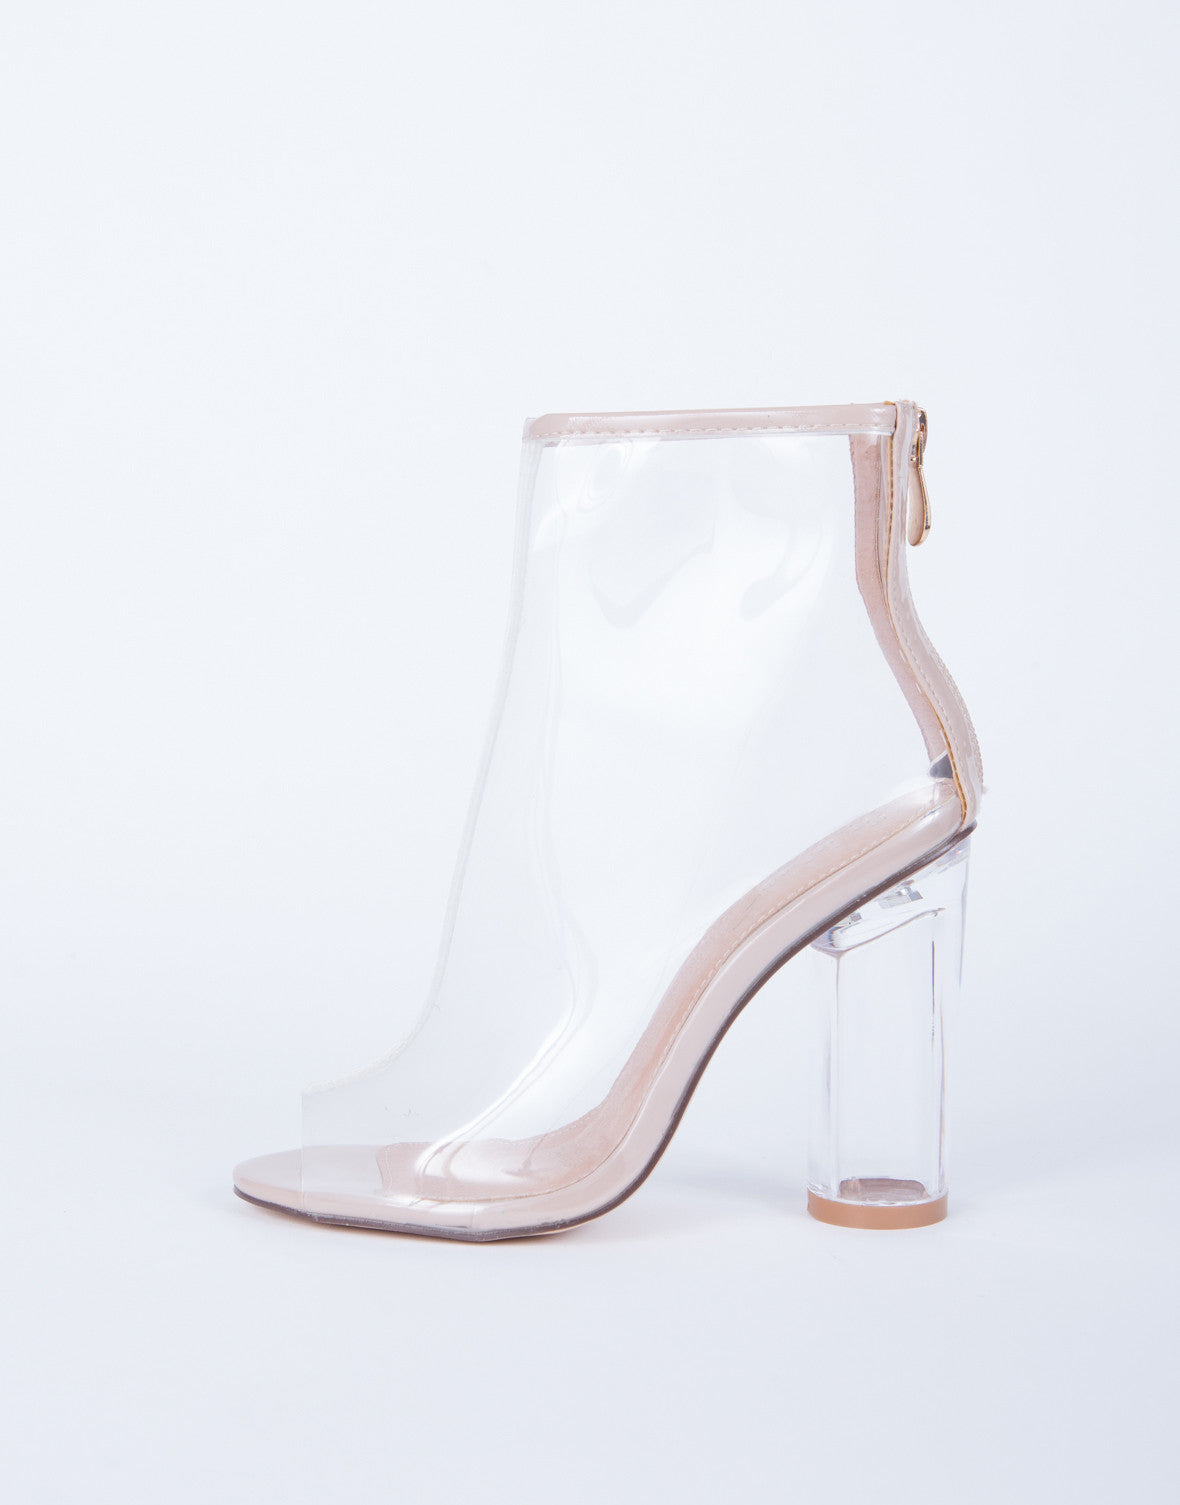 Peep Toe Clear Heel Boots - Clear Ankle Booties - Clear Lucite Heels ...